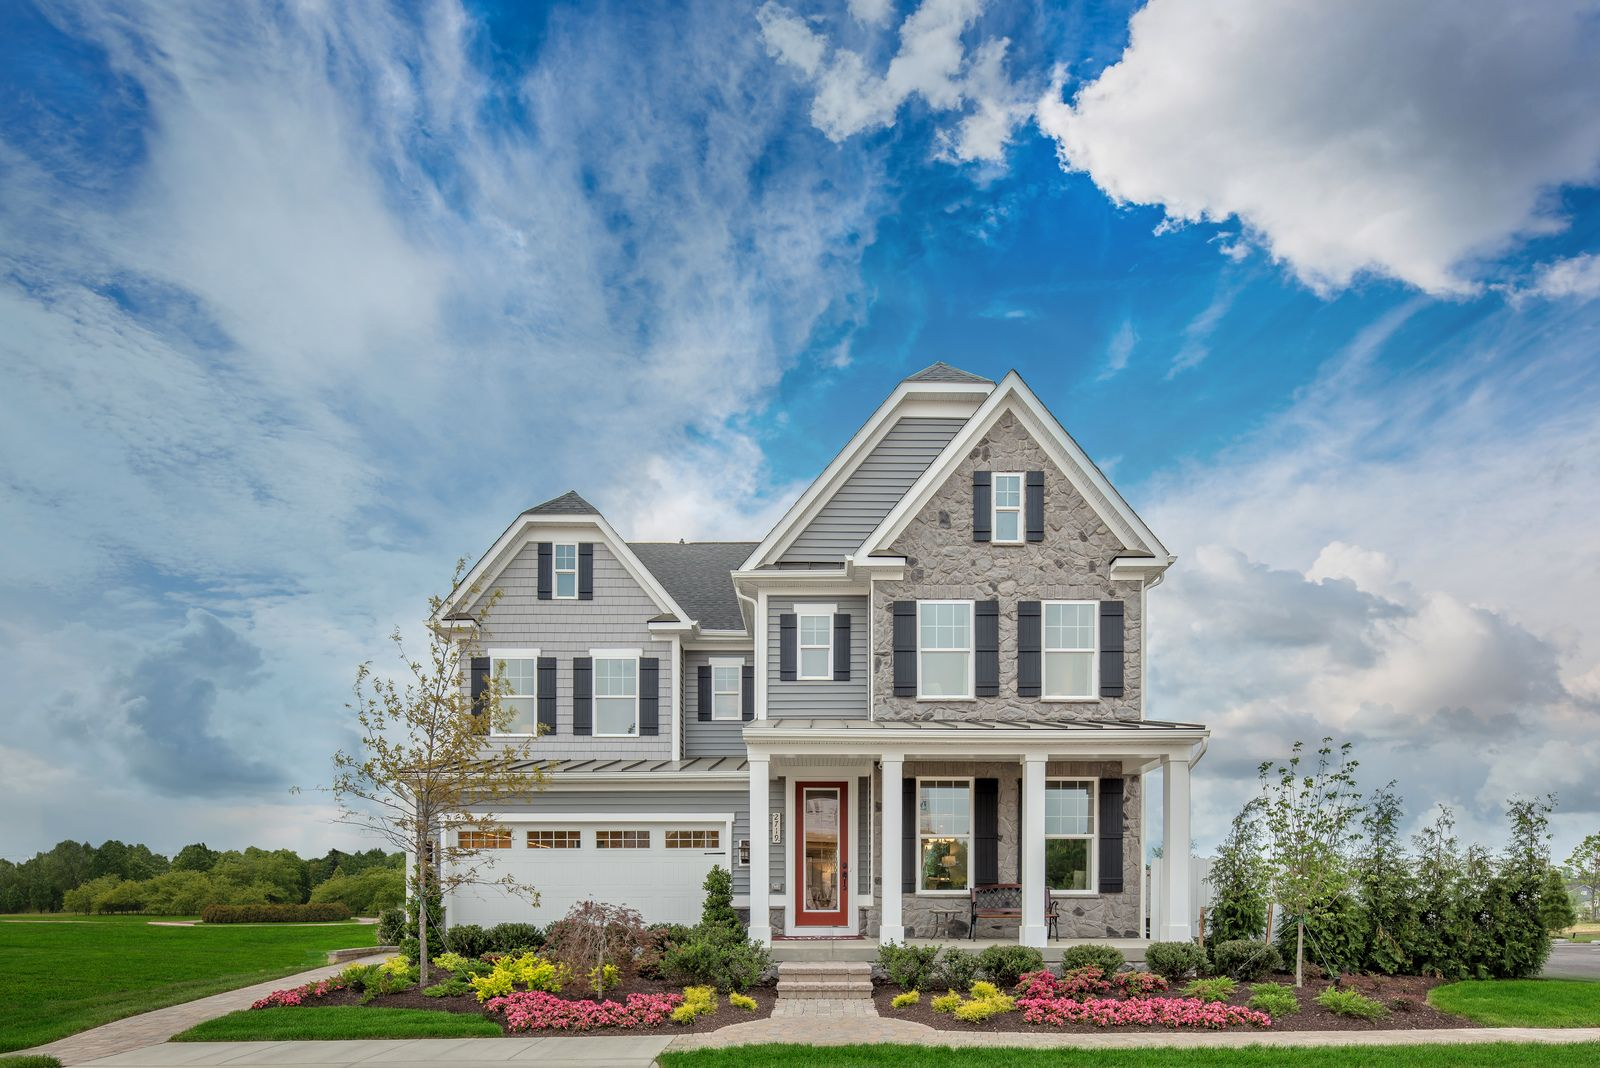 Discover Luxury Living at Turf Valley:Our grand single-family homes and first-floor owner's suite homes are now selling, with more included features than you ever imagined.Schedule a visit today!